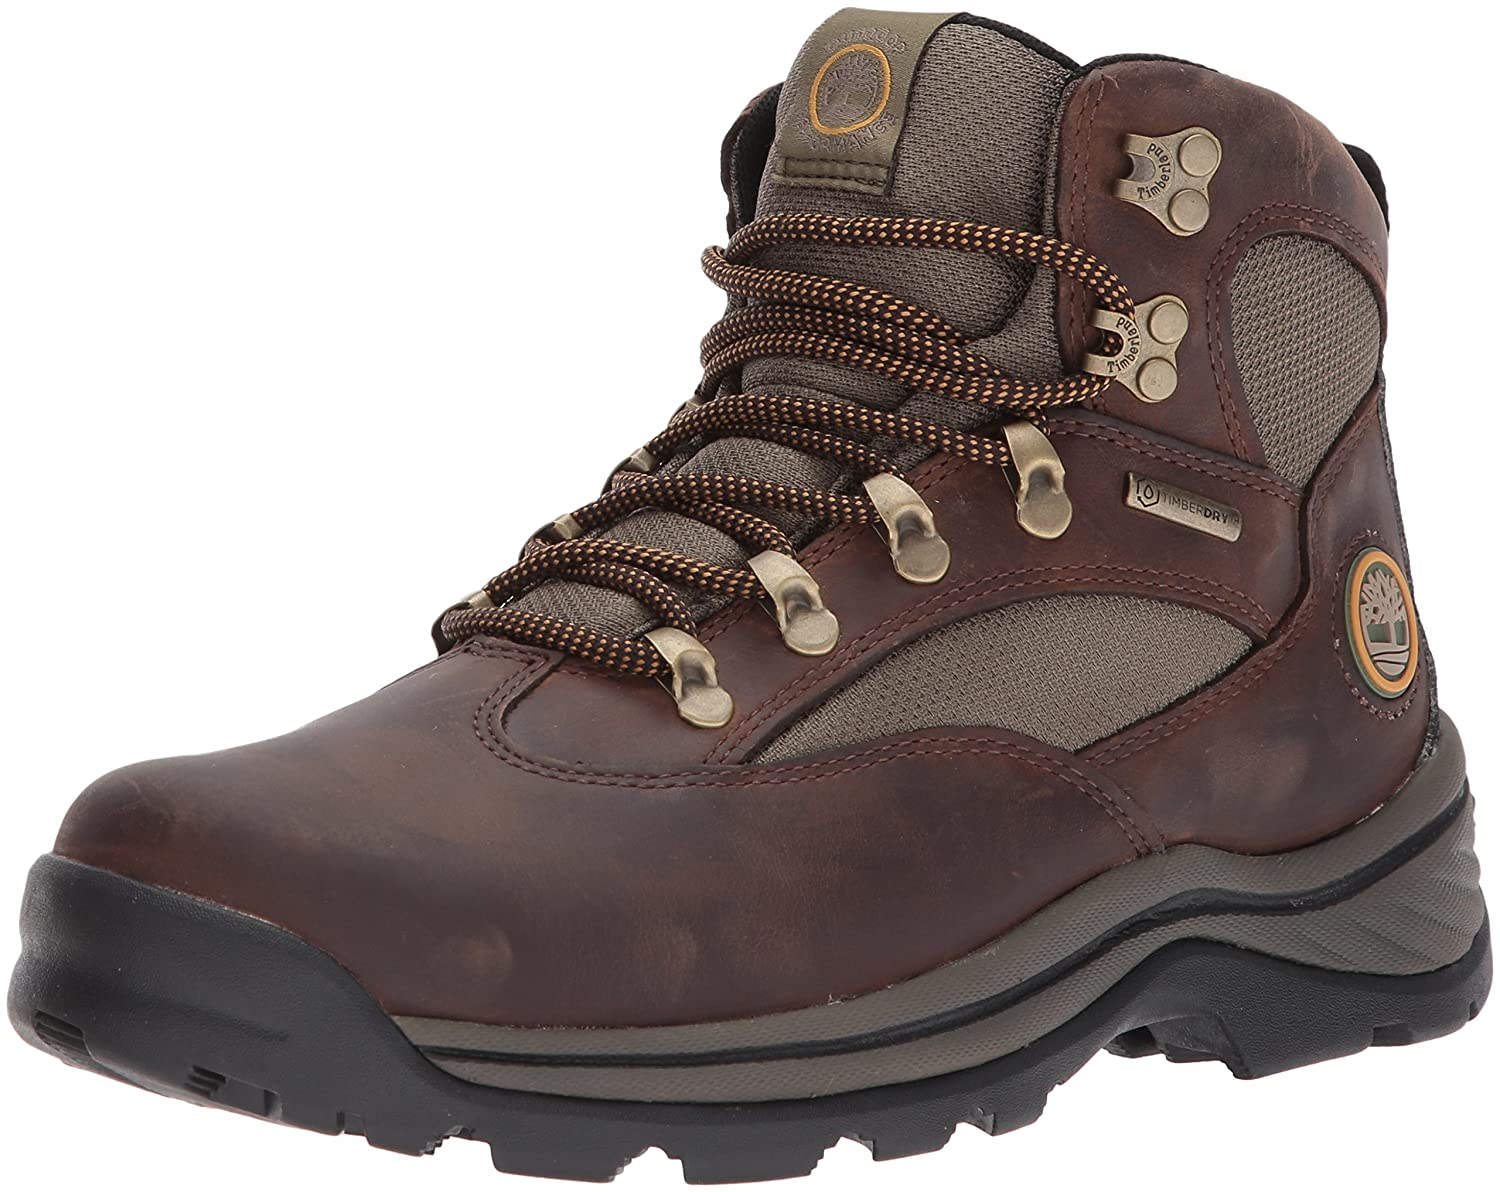 Timberland Men's Chocorua Trail Gore-Tex 中度徒步鞋